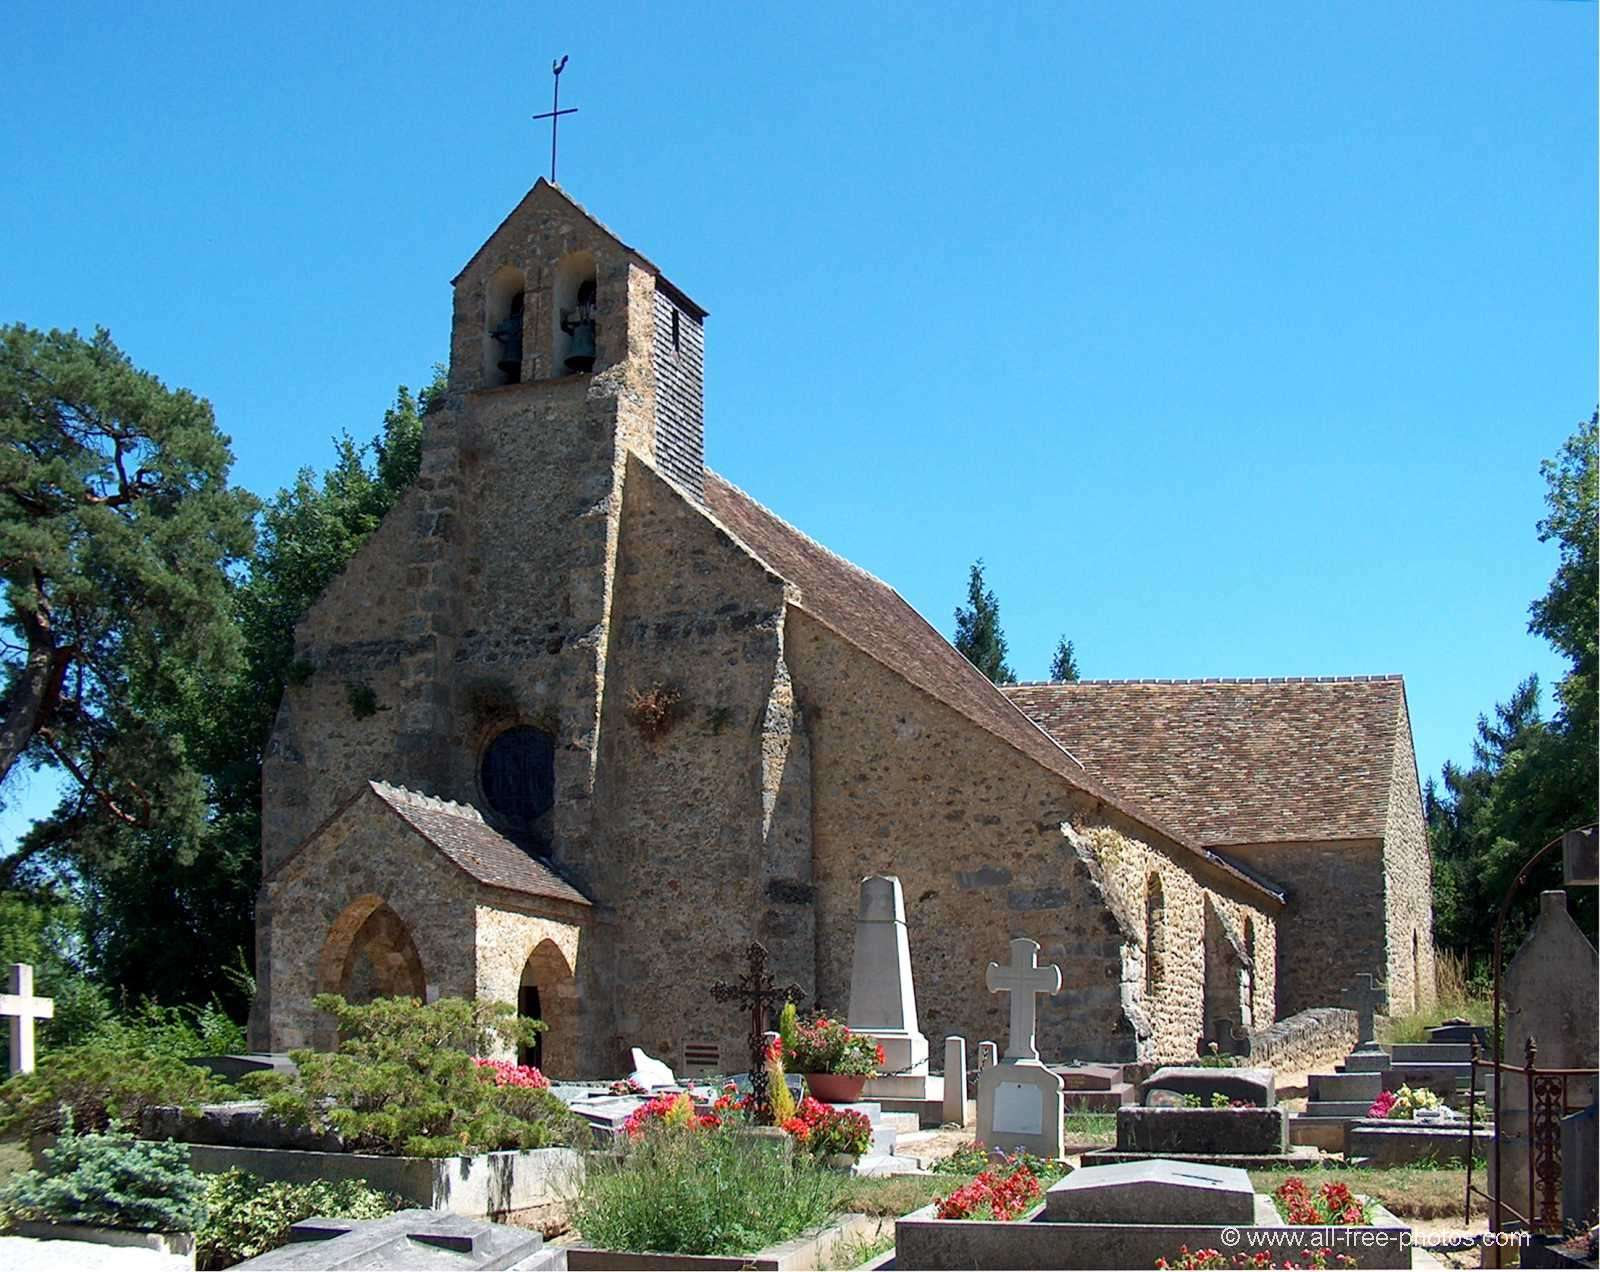 Church of Saint Lambert des Bois - France